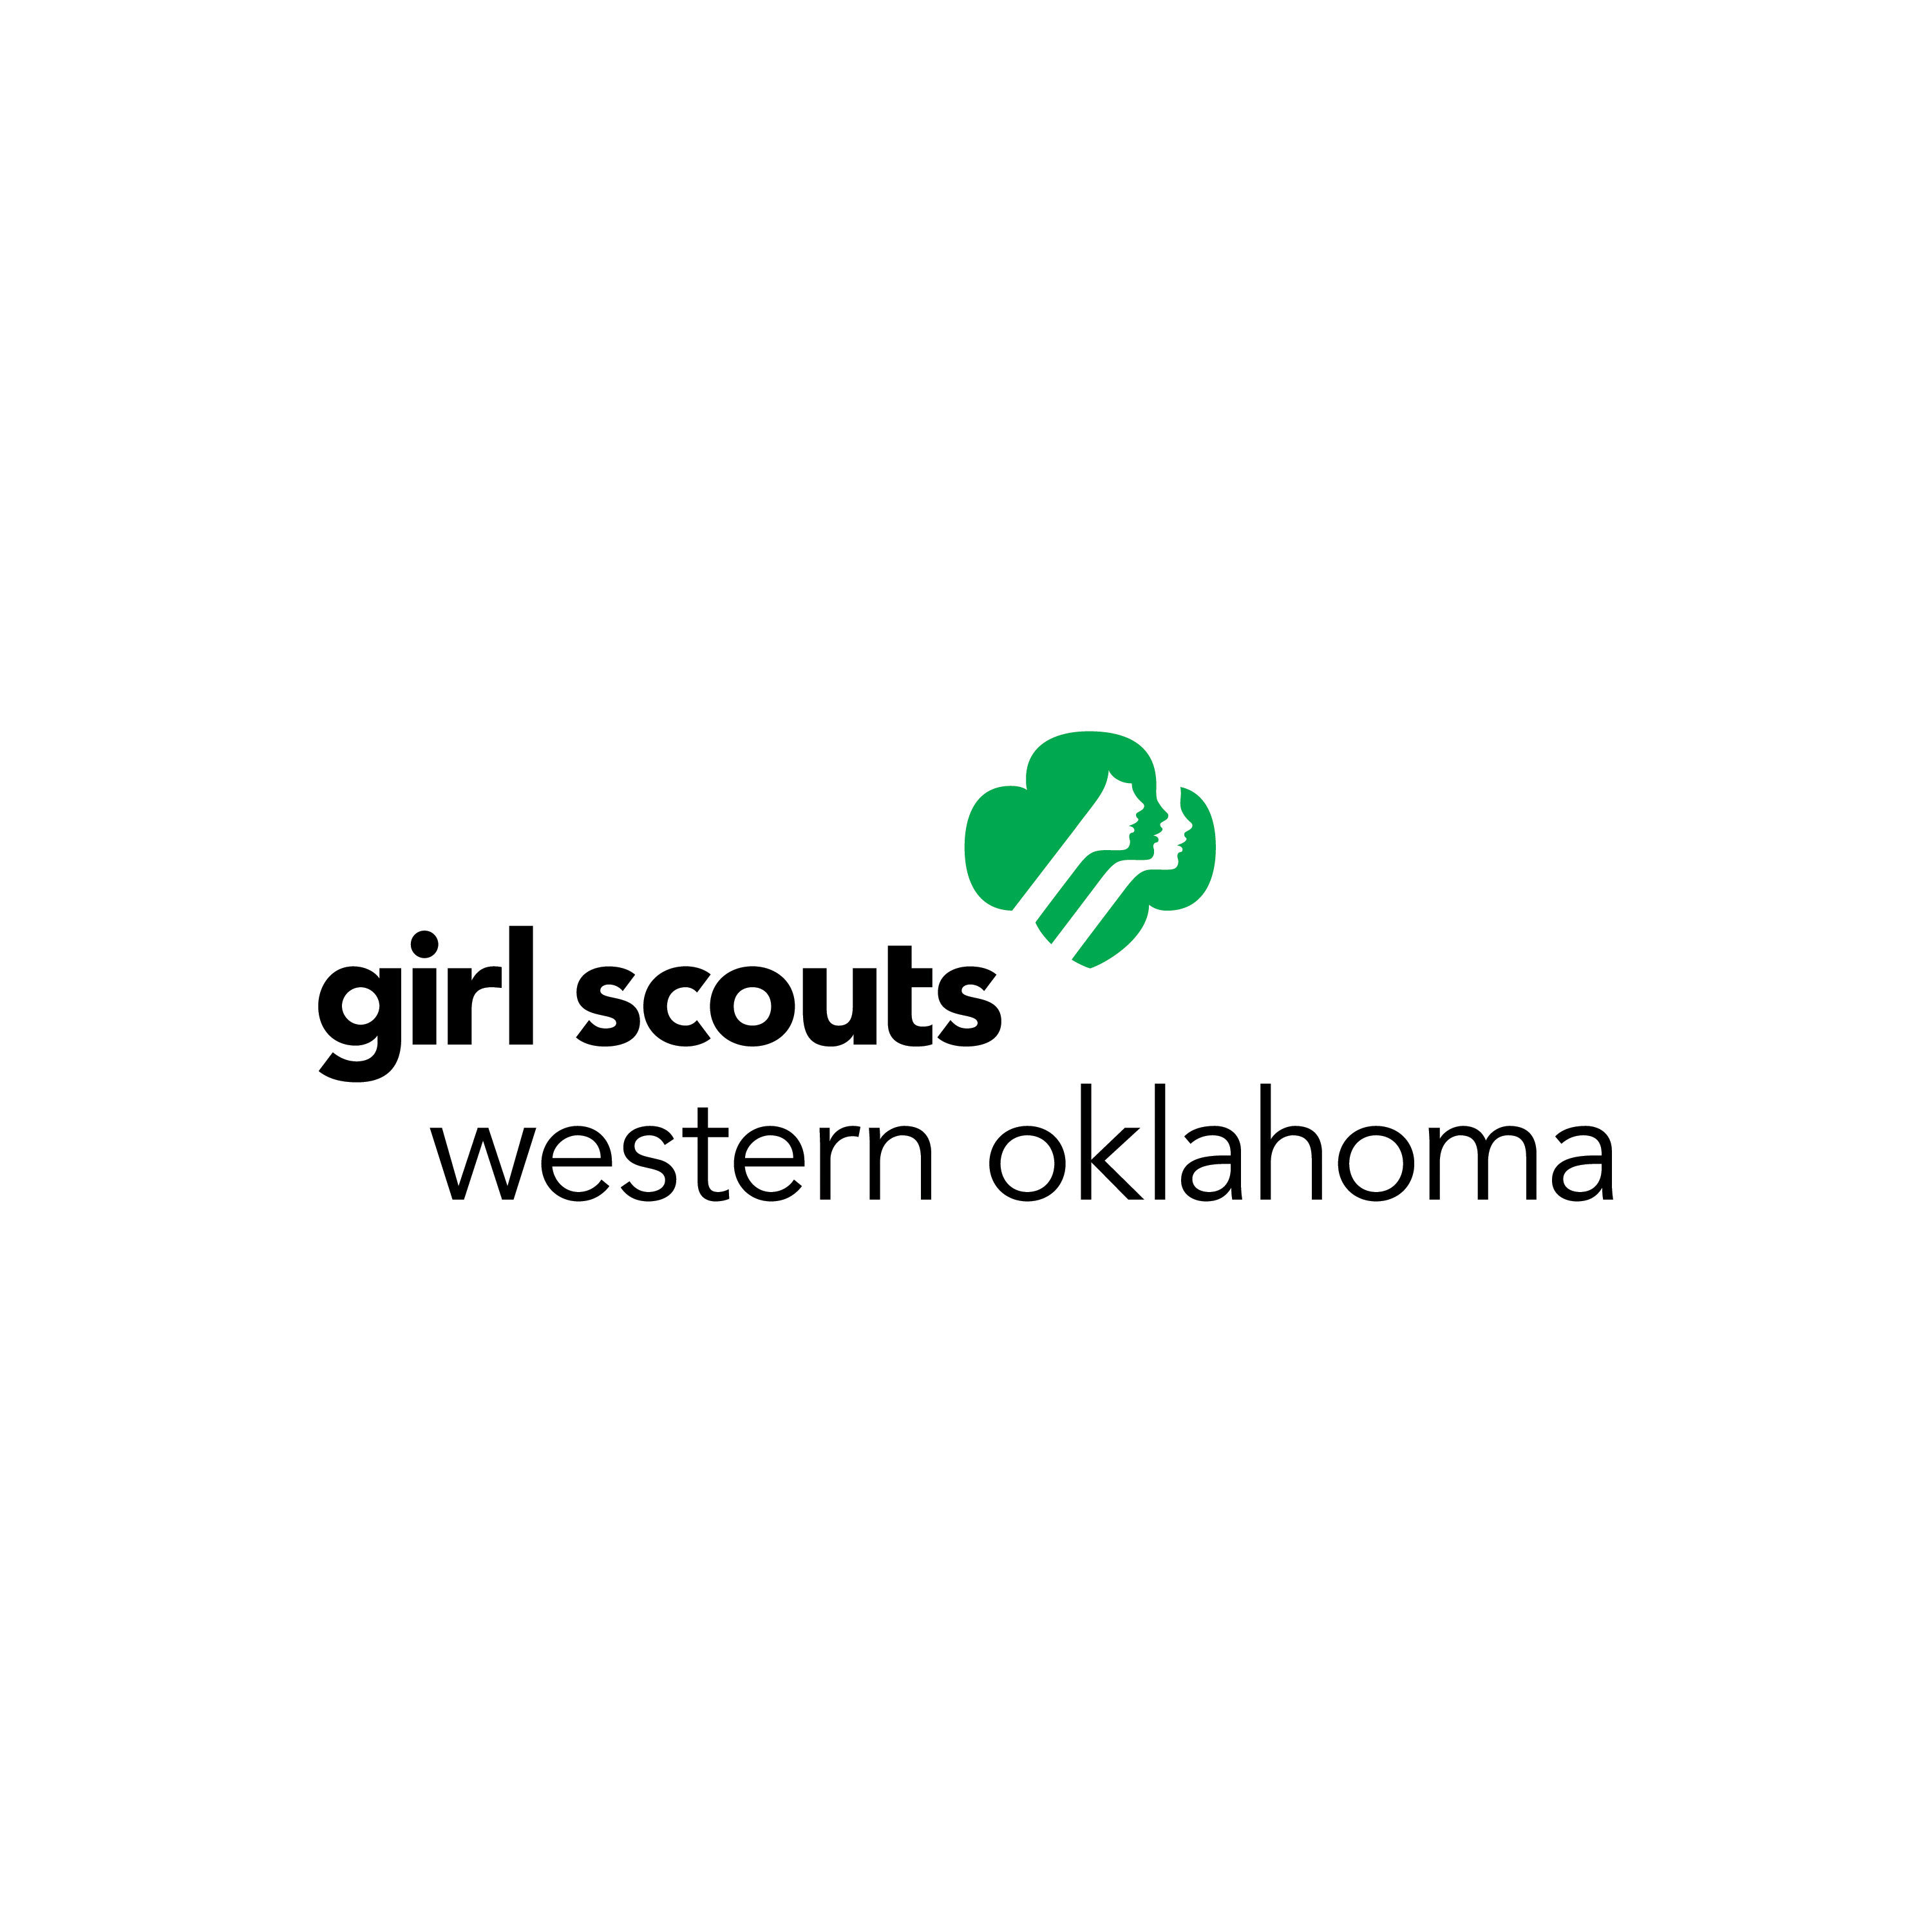 home girl scouts western oklahoma home girl scouts western oklahoma